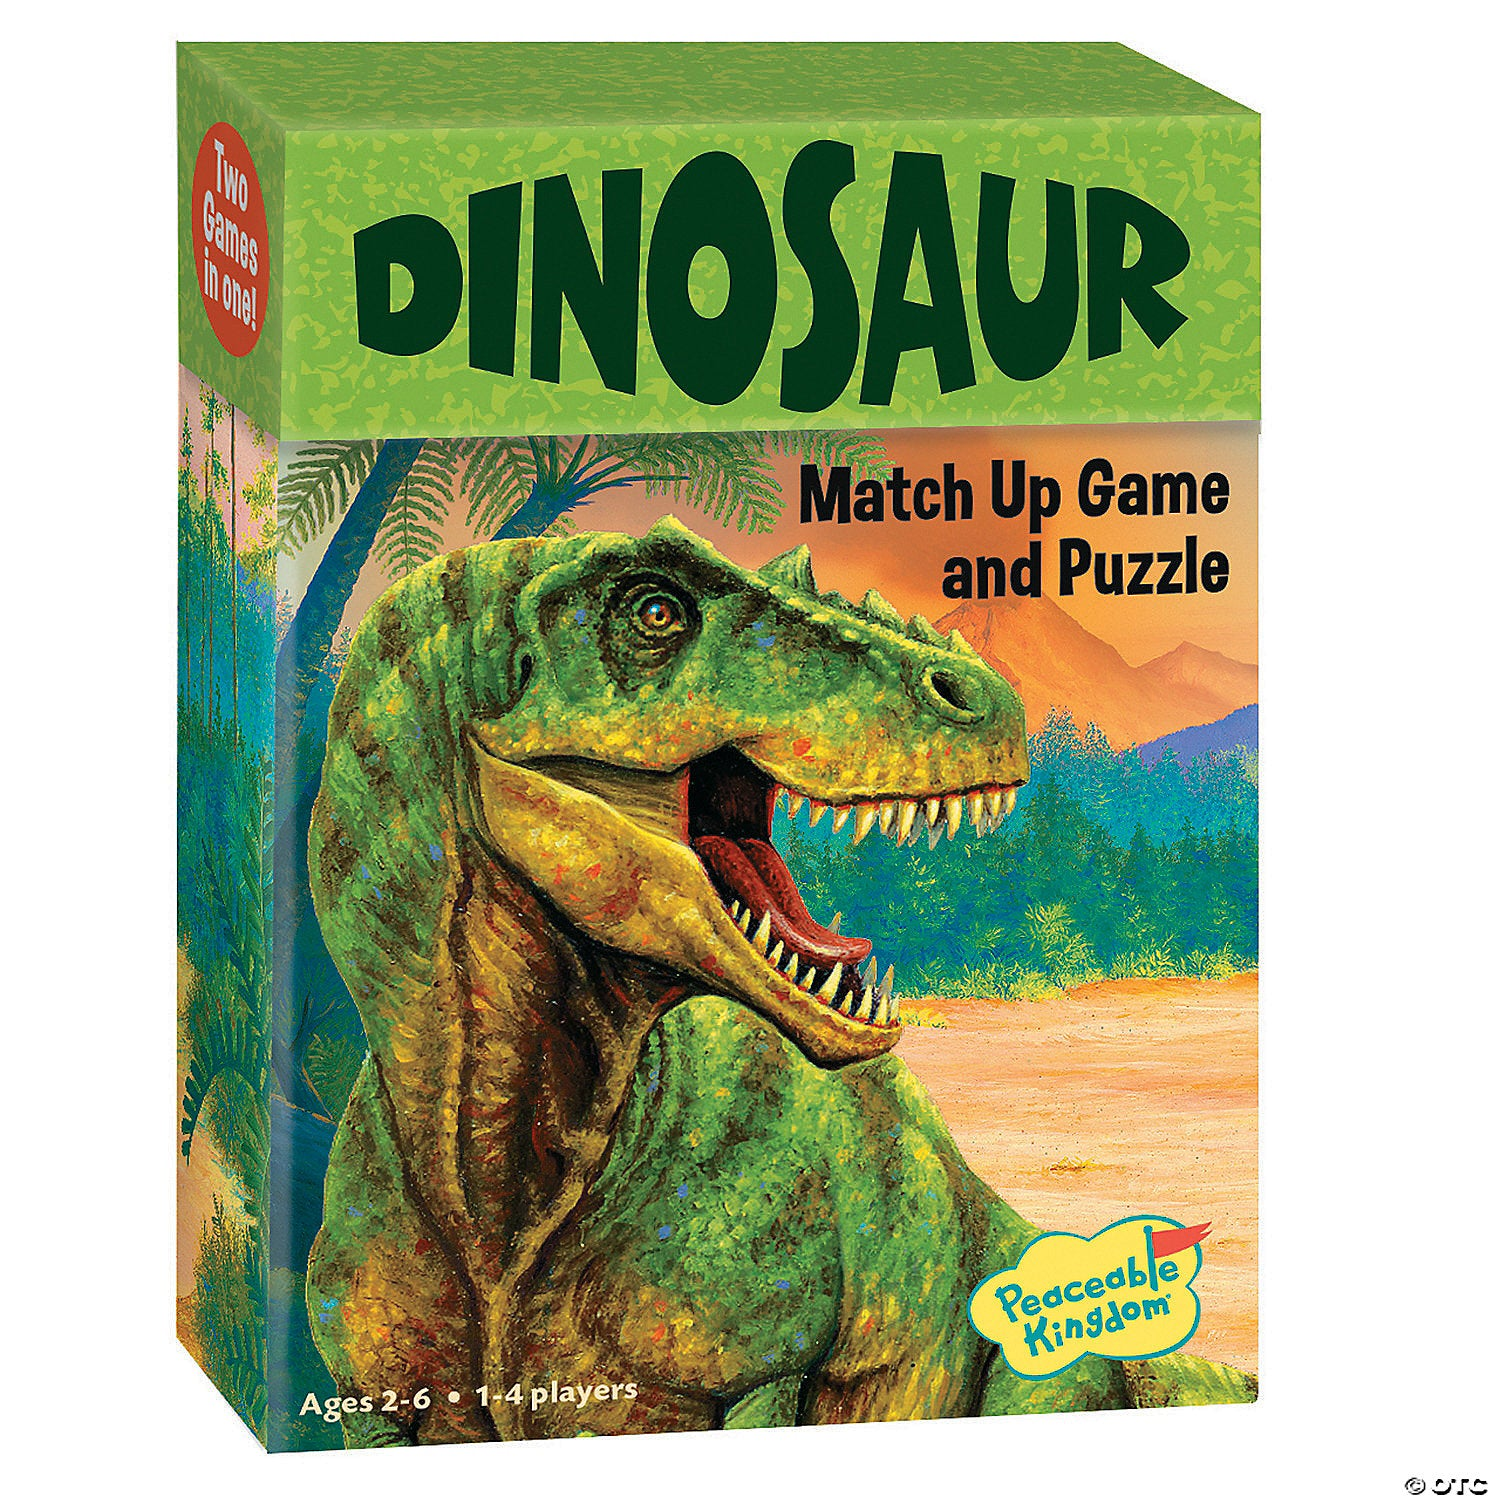 Dinosaur Match Up Game & Puzzle